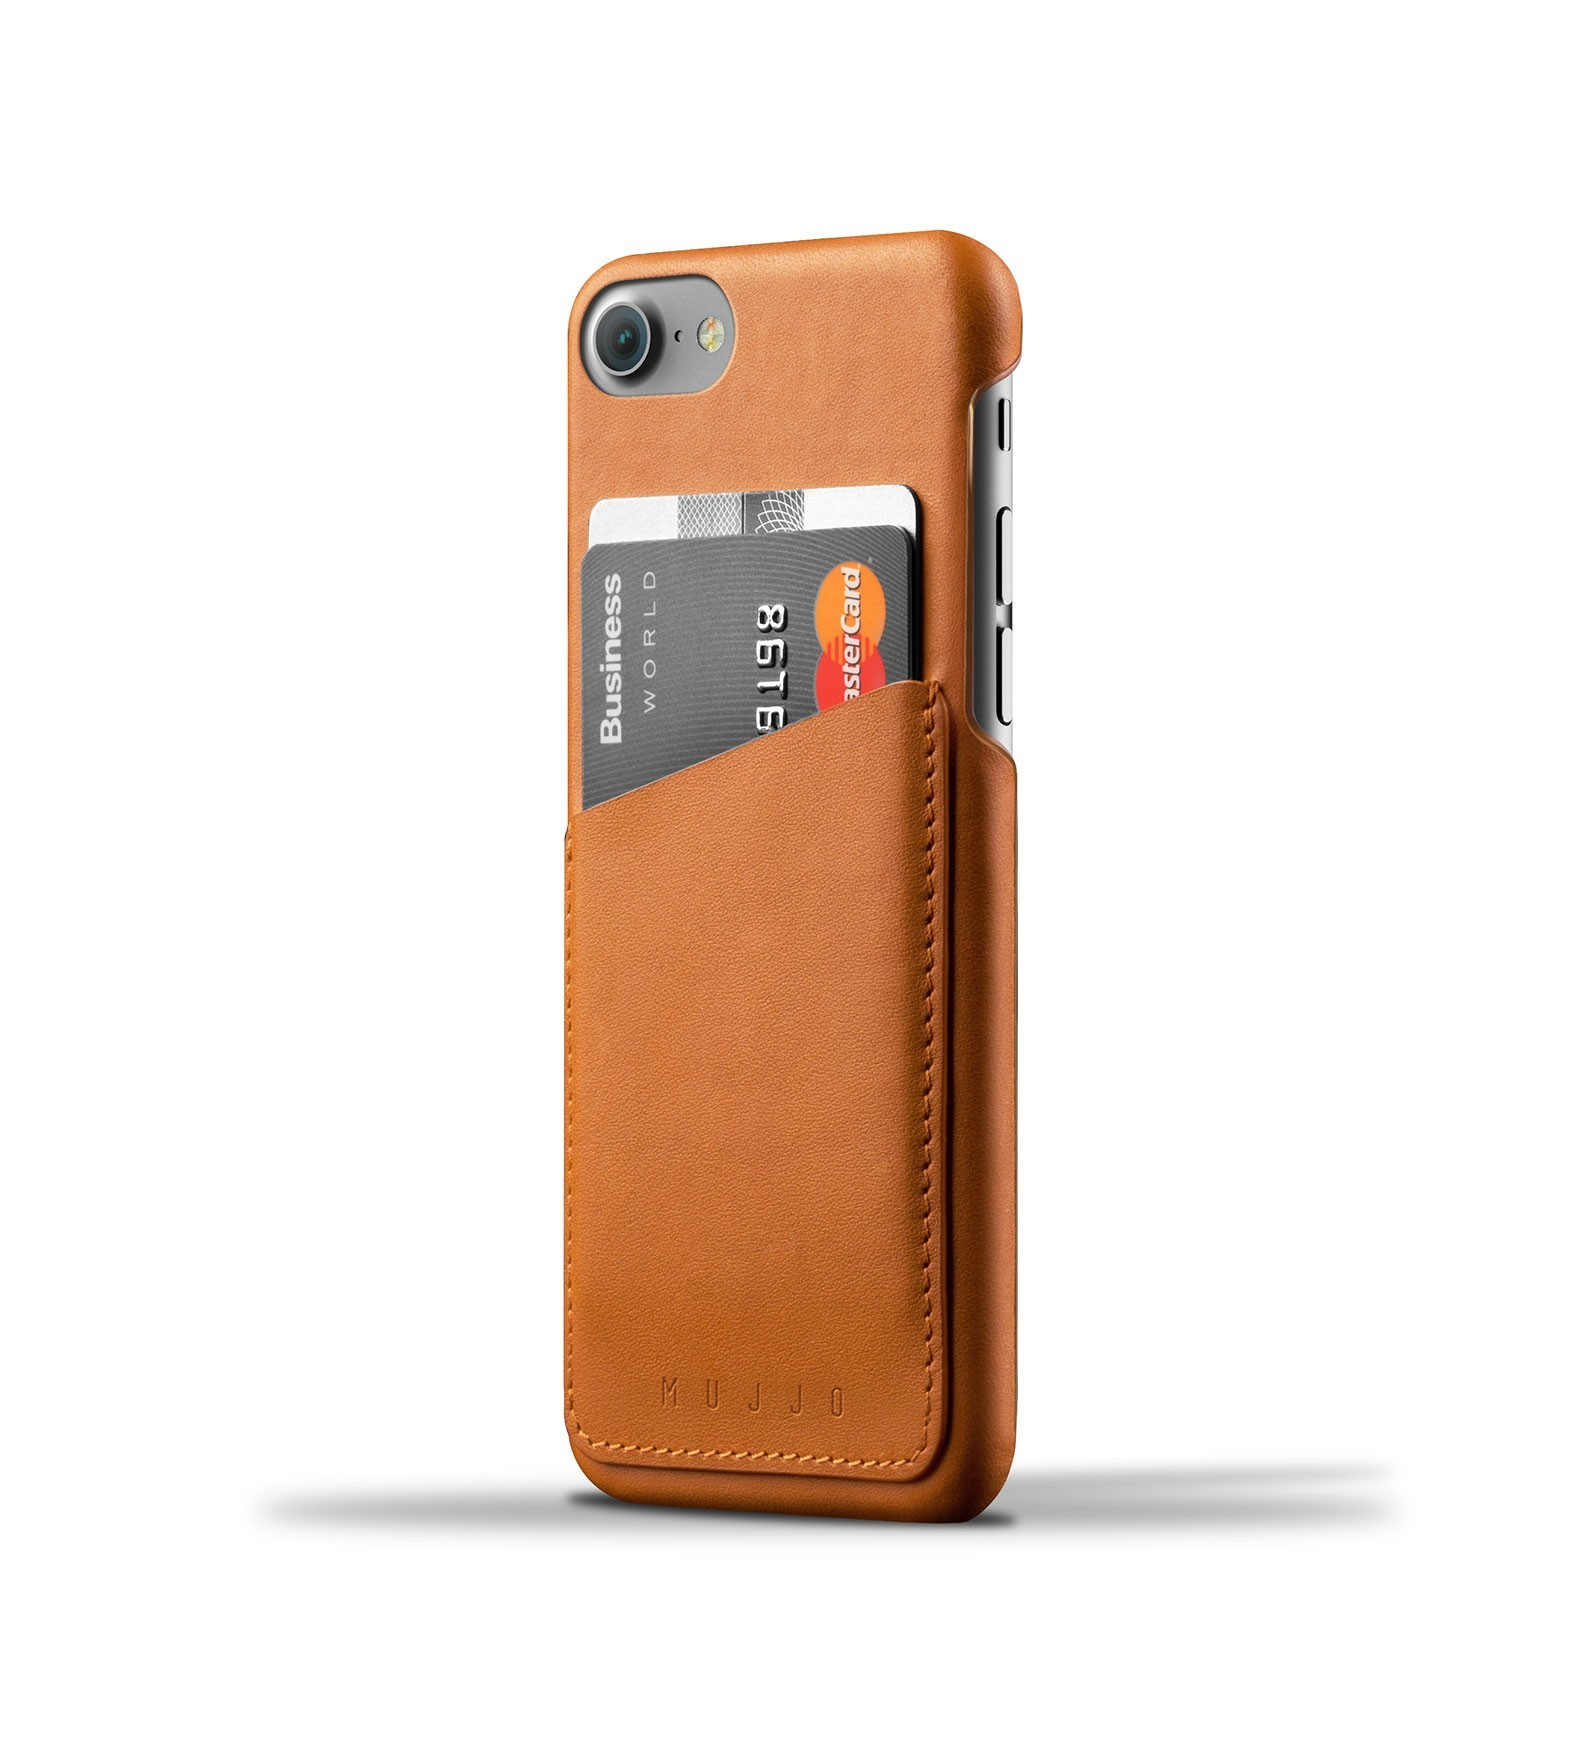 Mujjo Wallet Case iPhone 7 Plus braun